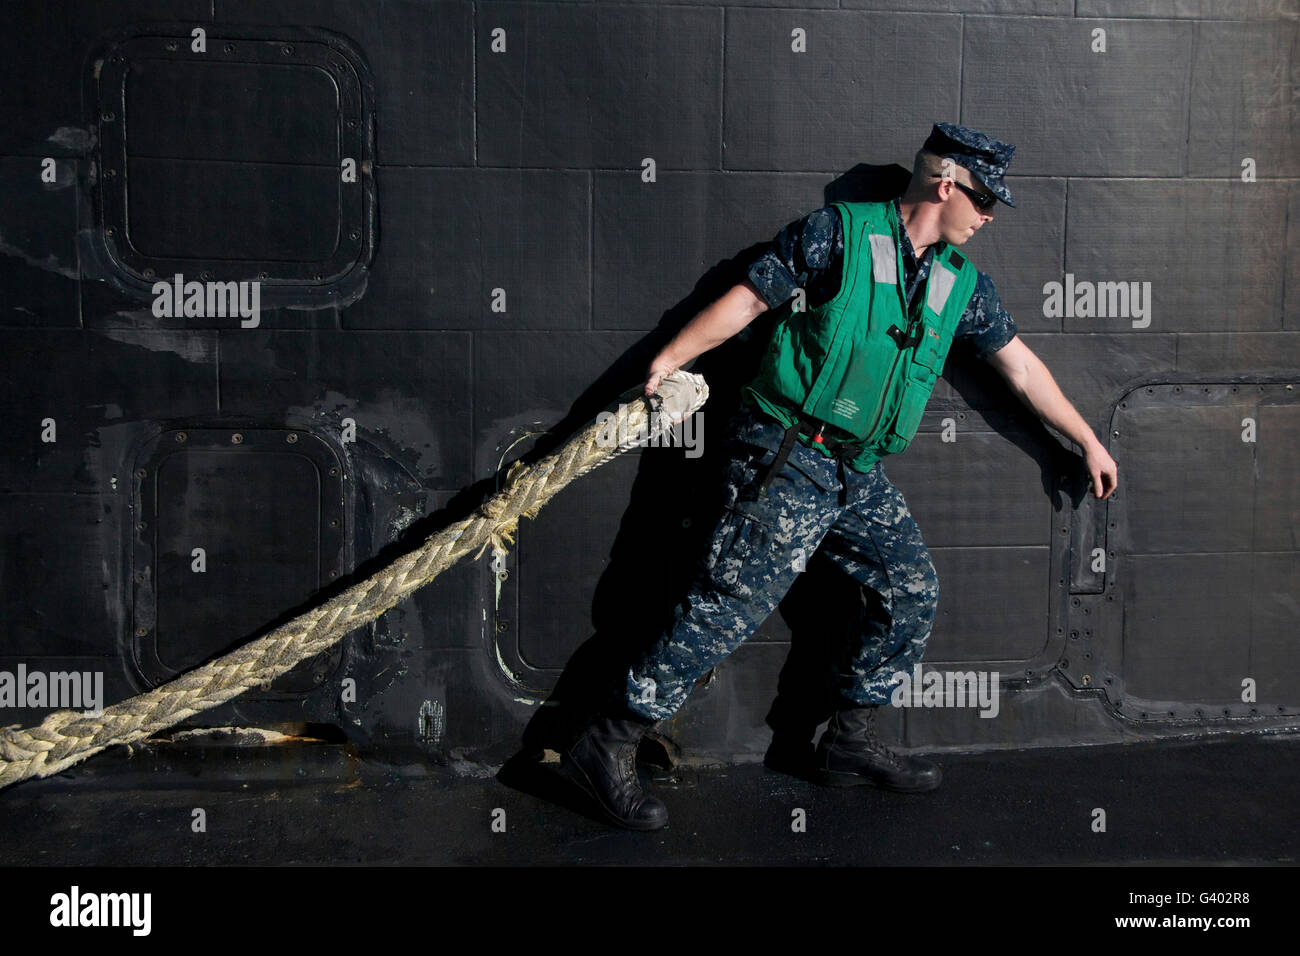 Fire Control Technician hauls a heavy line from the harbor tug. - Stock Image